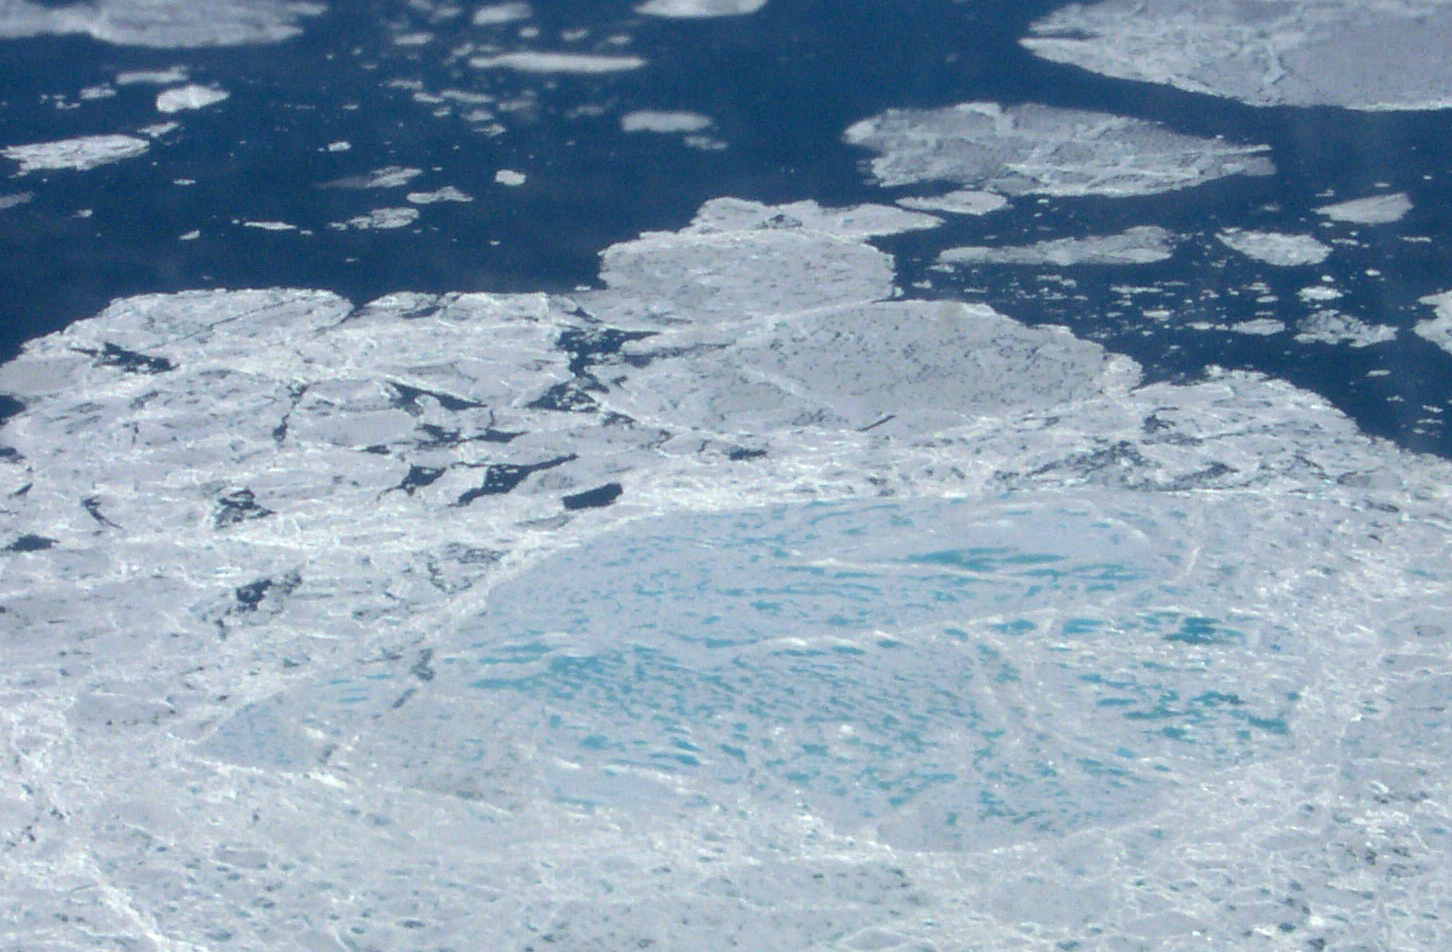 5 Statements You'll Hear if You Say You Believe Global Warming Exists...and 5 Responses